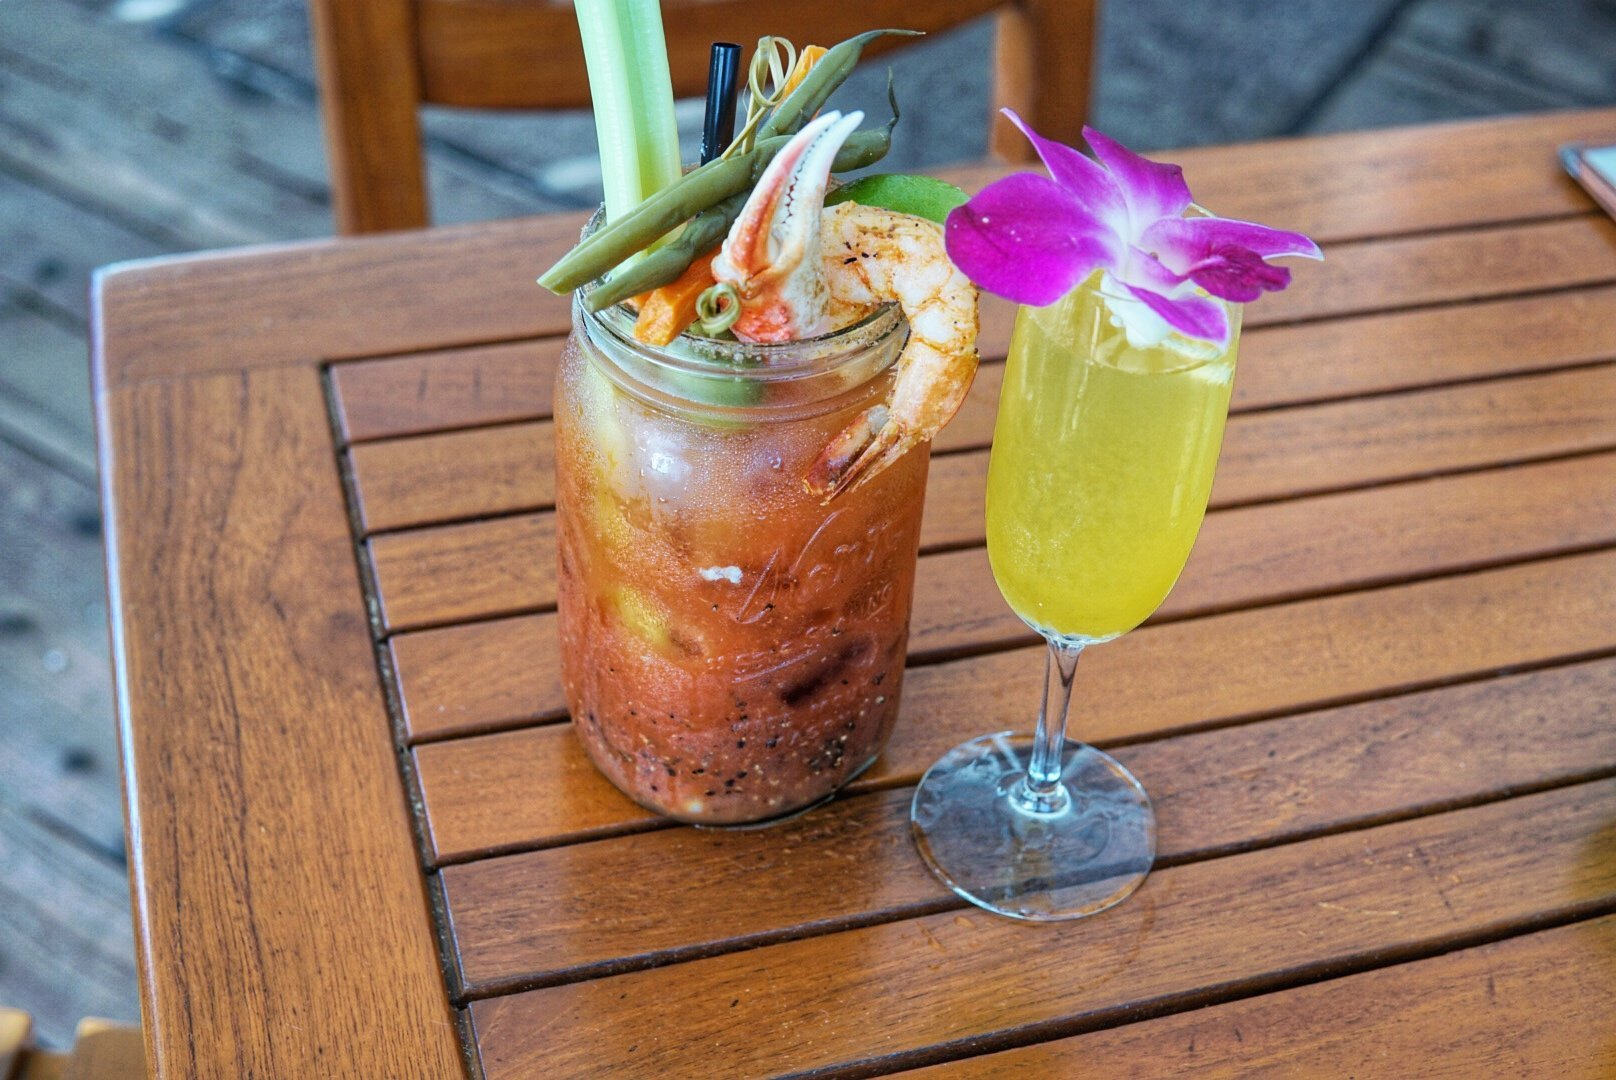 Enjoy Brunch With a View At Beachcomber Cafe in Newport Beach